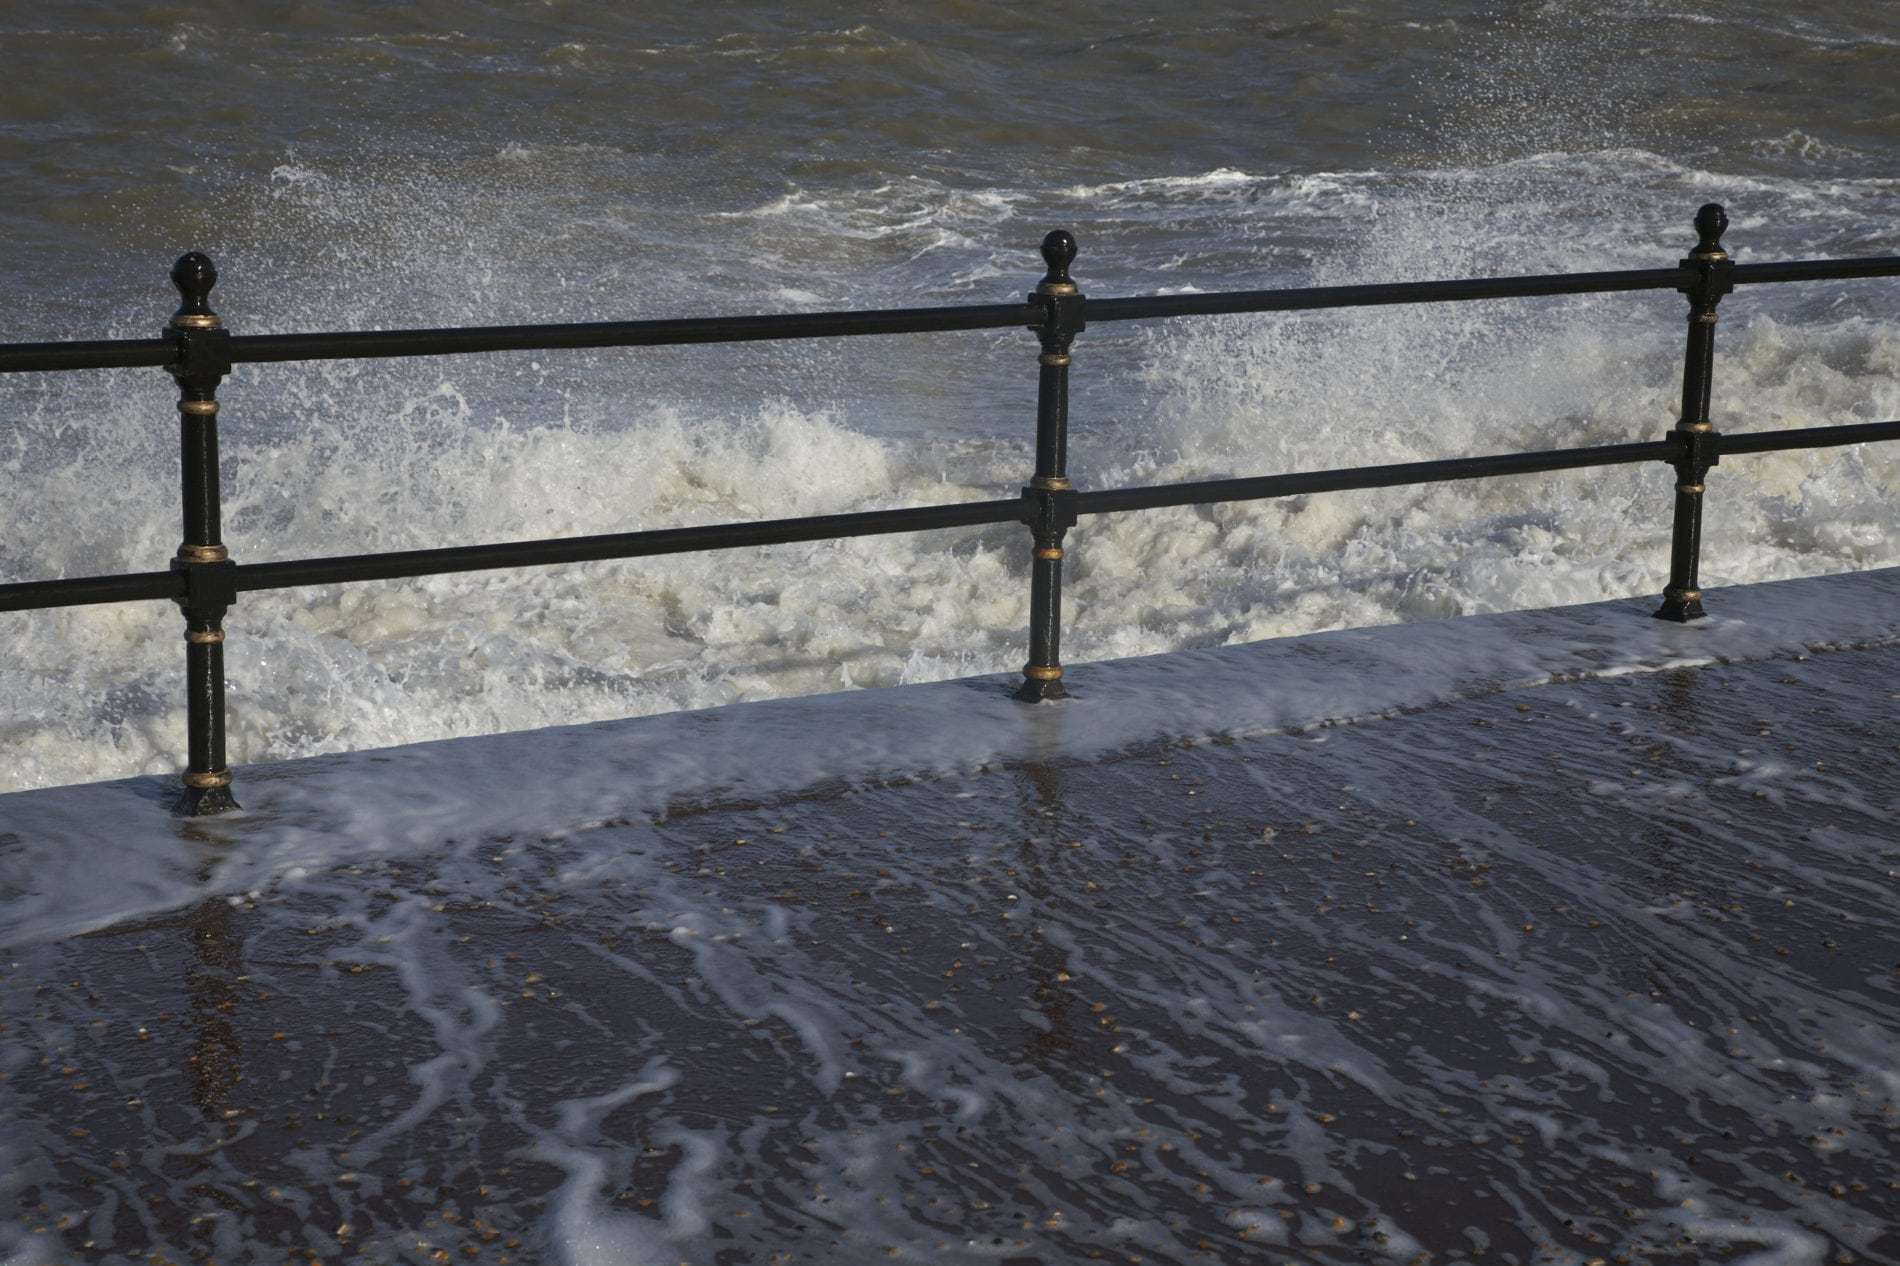 5 Top Concerns Our Clients Have About the JMARK Flooding